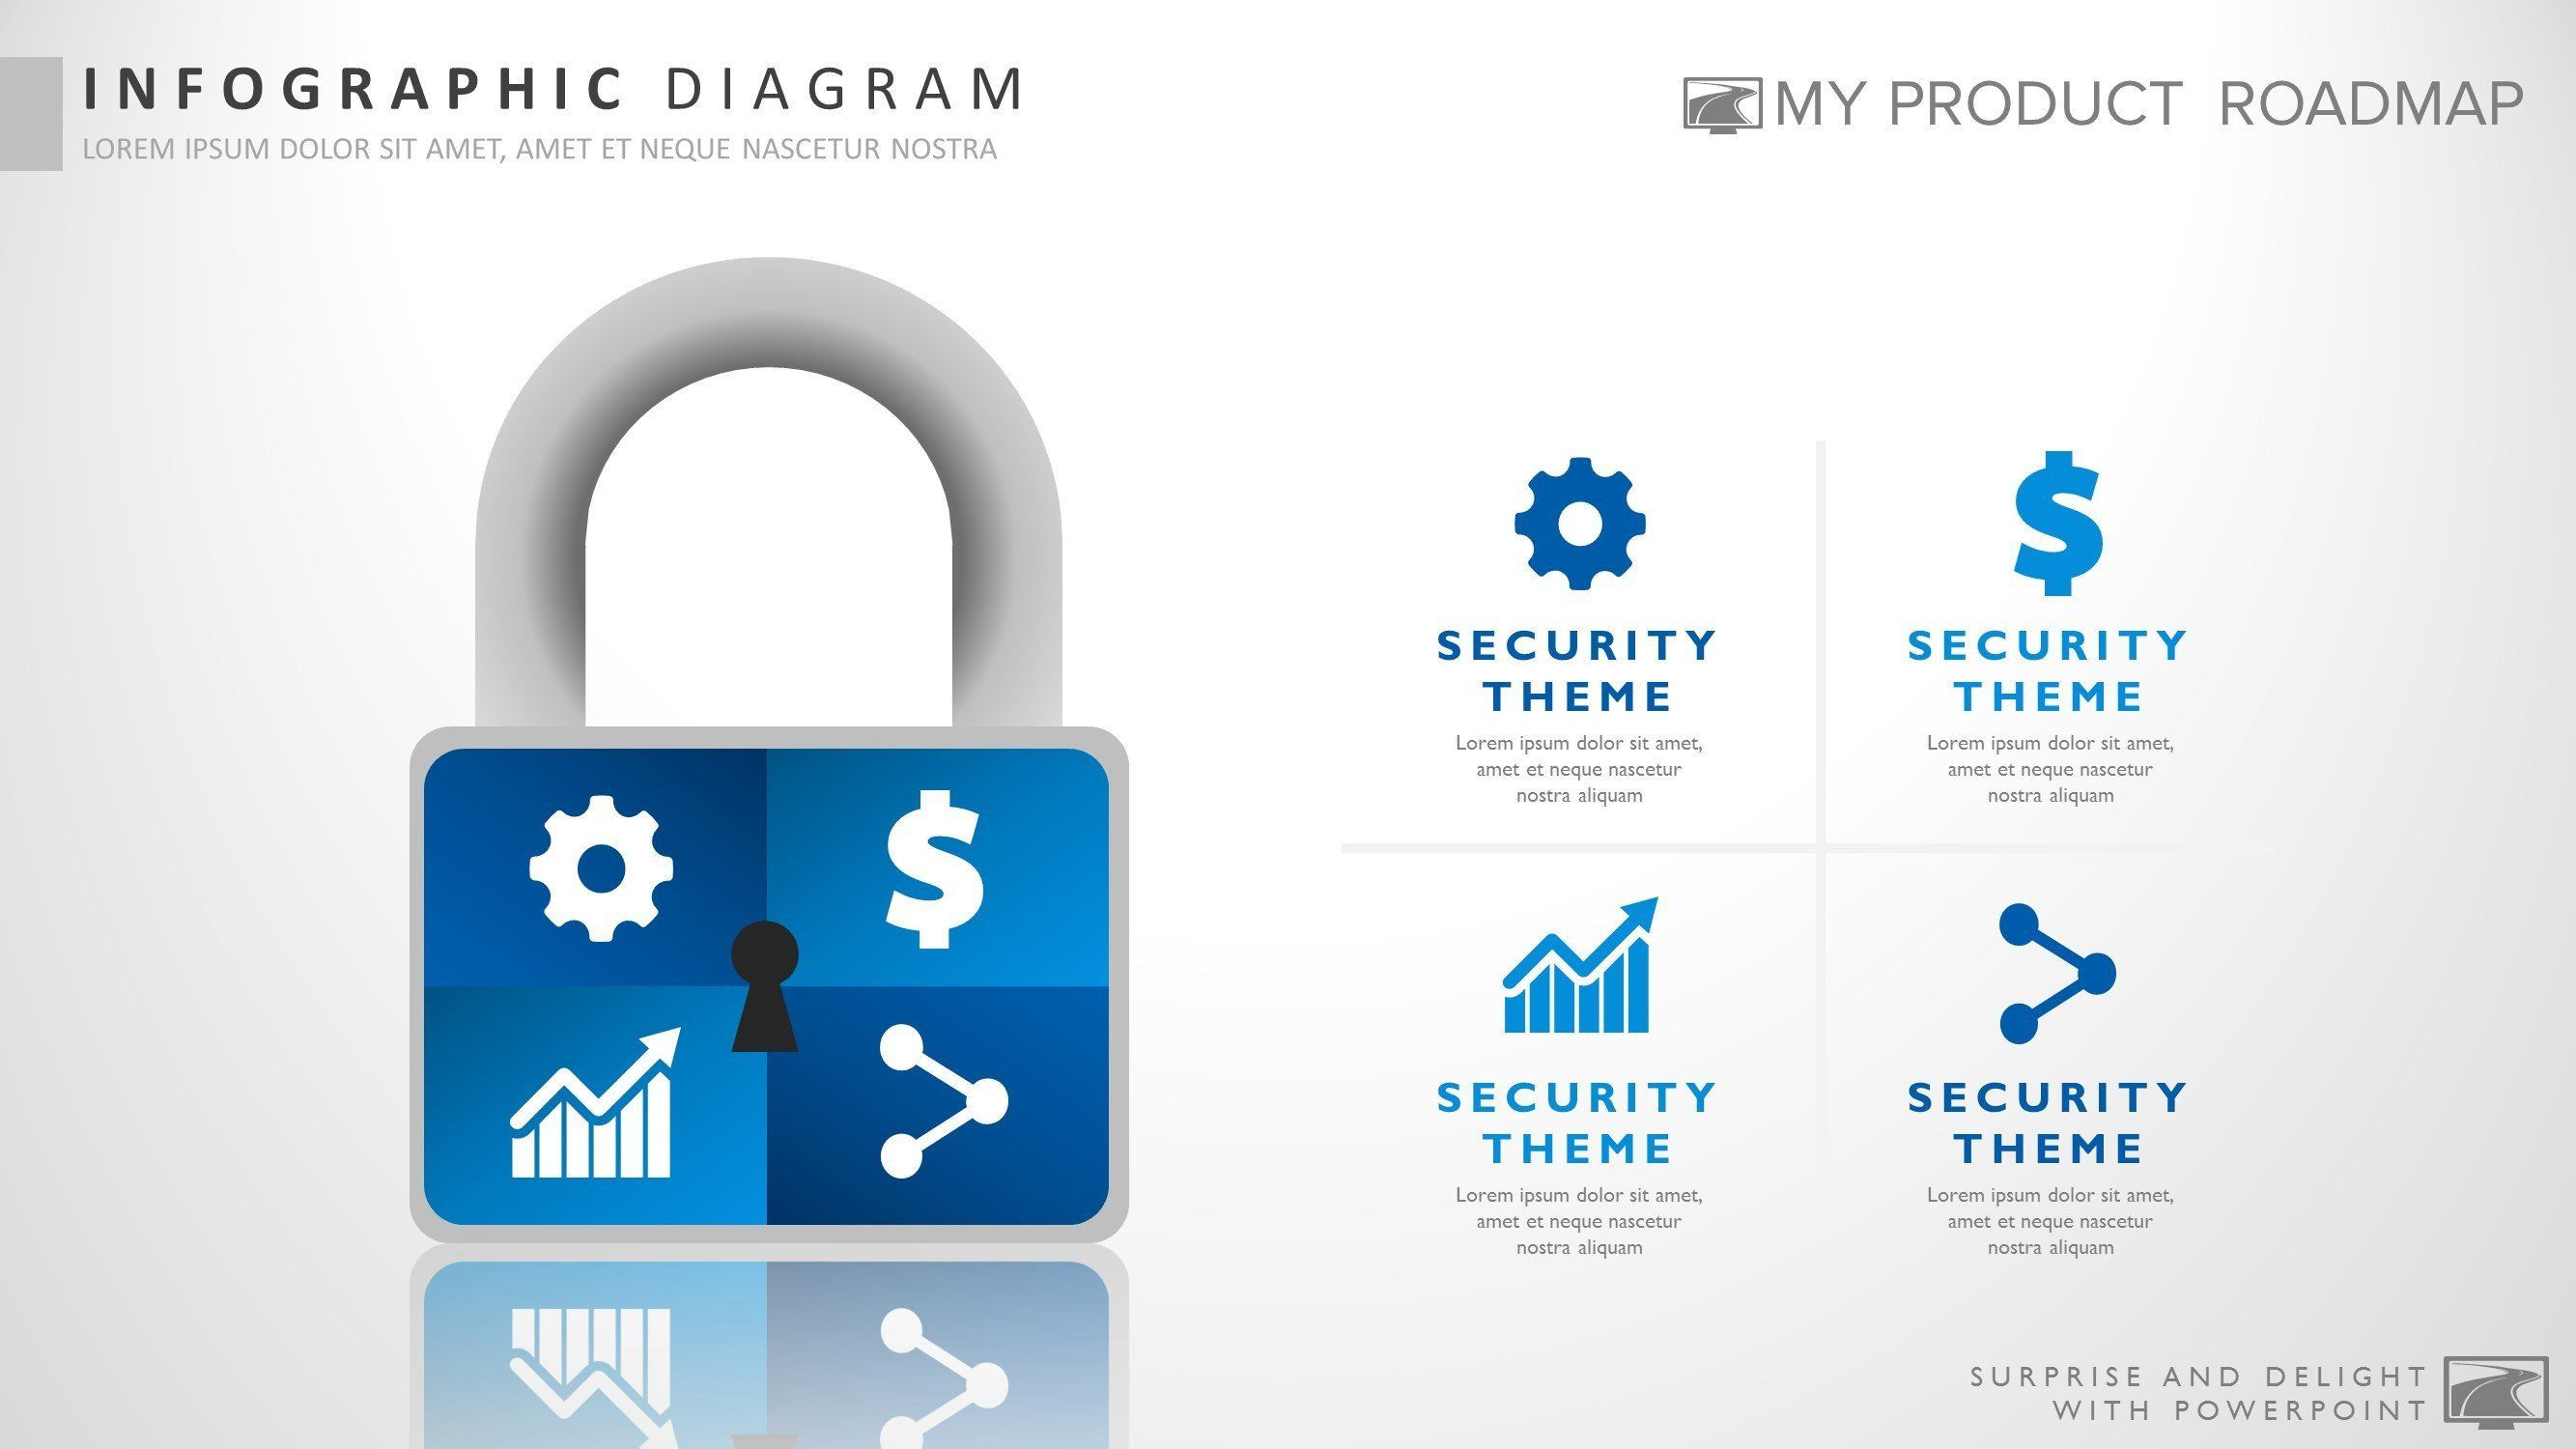 Four Stage Modern Powerpoint Strategy Smartart Presentation Template - Security roadmap template